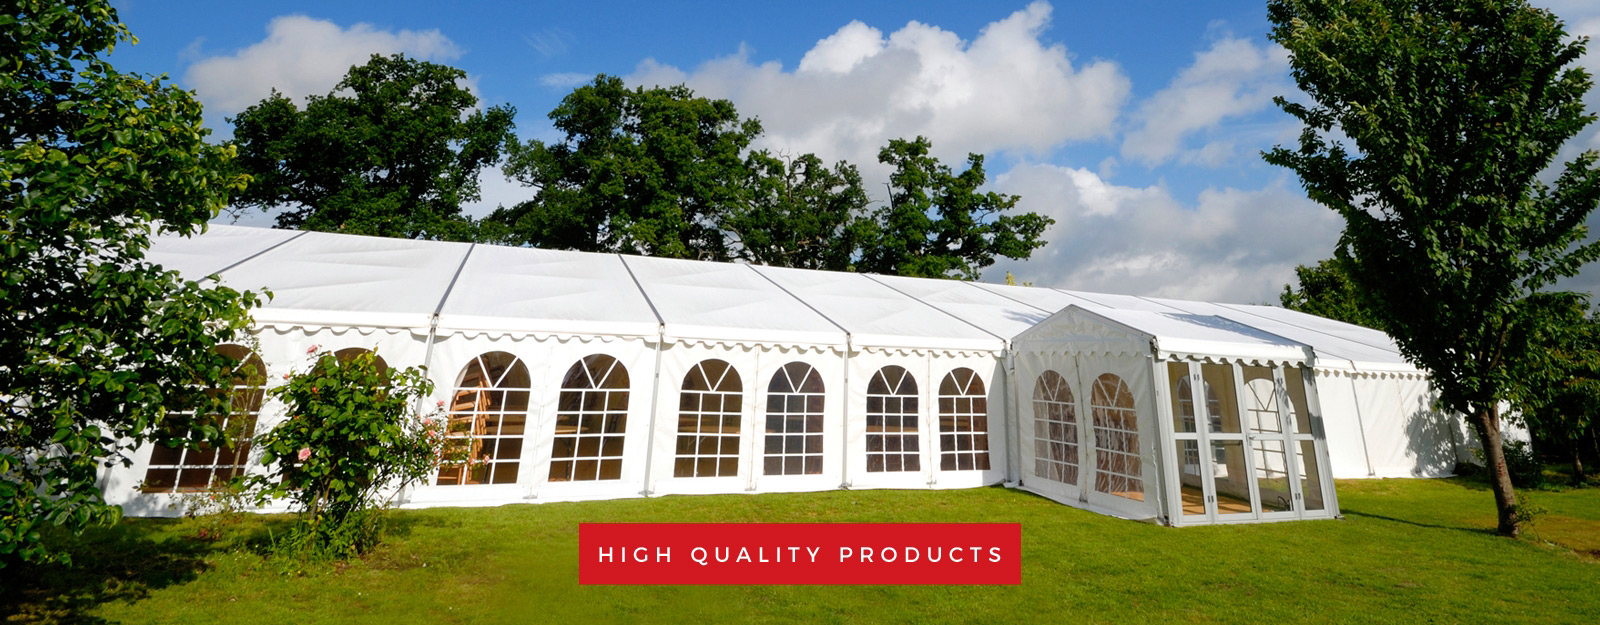 Basboga Tent and Tarpaulin High Quality Products